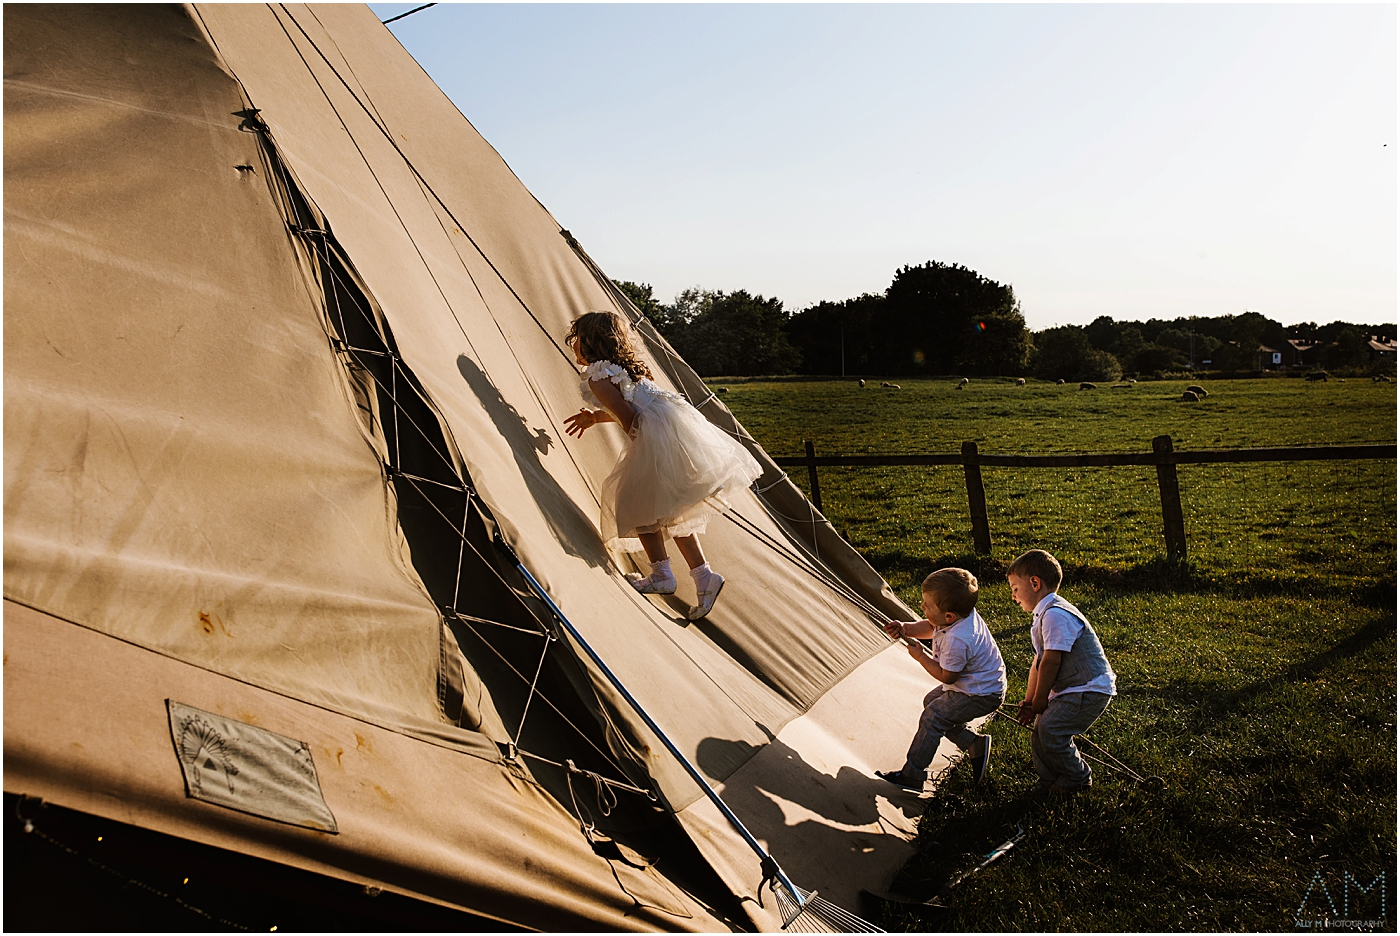 Children climbing up the wedding teepee